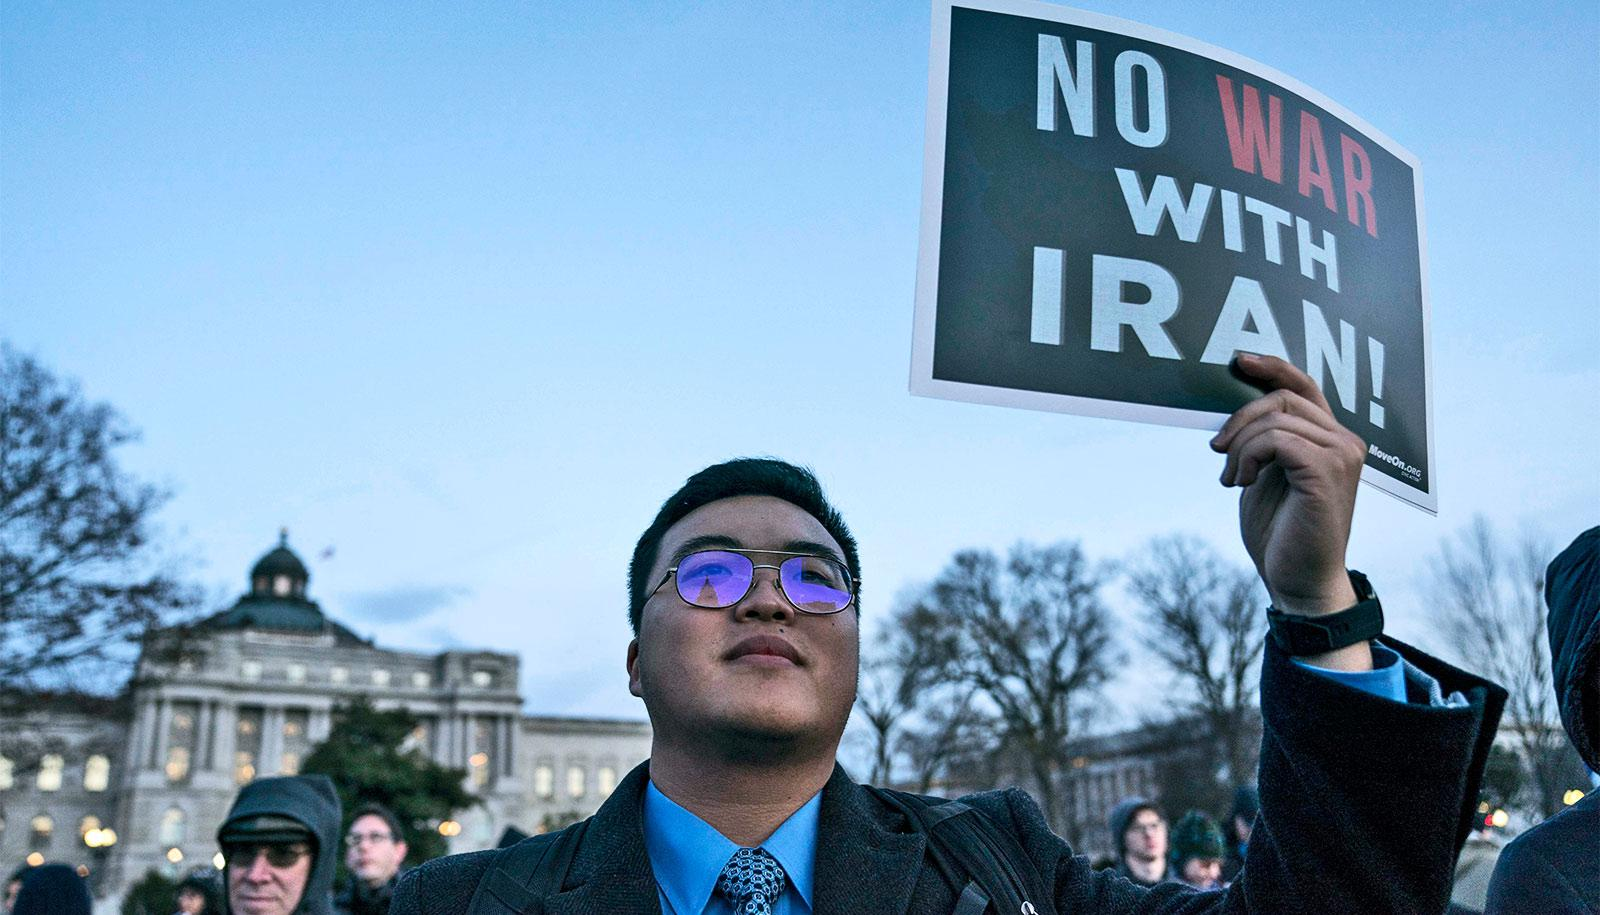 """A protestor in a suit and glasses holds a black and white sign that reads """"No War with Iran"""" with """"war"""" in red"""